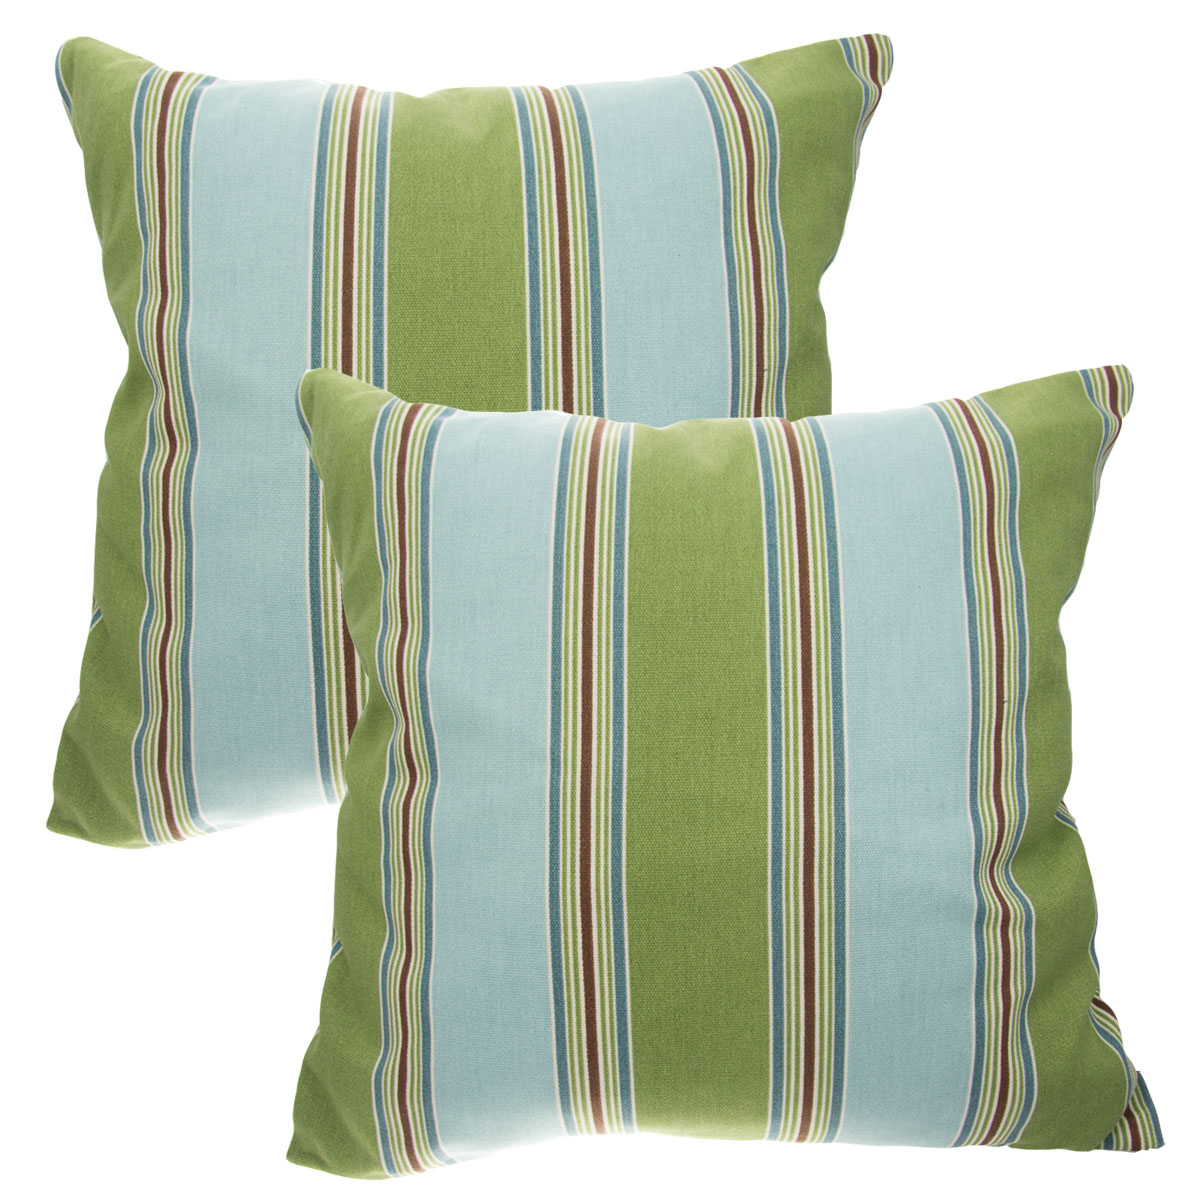 Throw Pillow Set For Couch : Set of 2 Throw Pillows Indoor/Outdoor Couch Furniture Cushion Patio Bed Sofa UV eBay